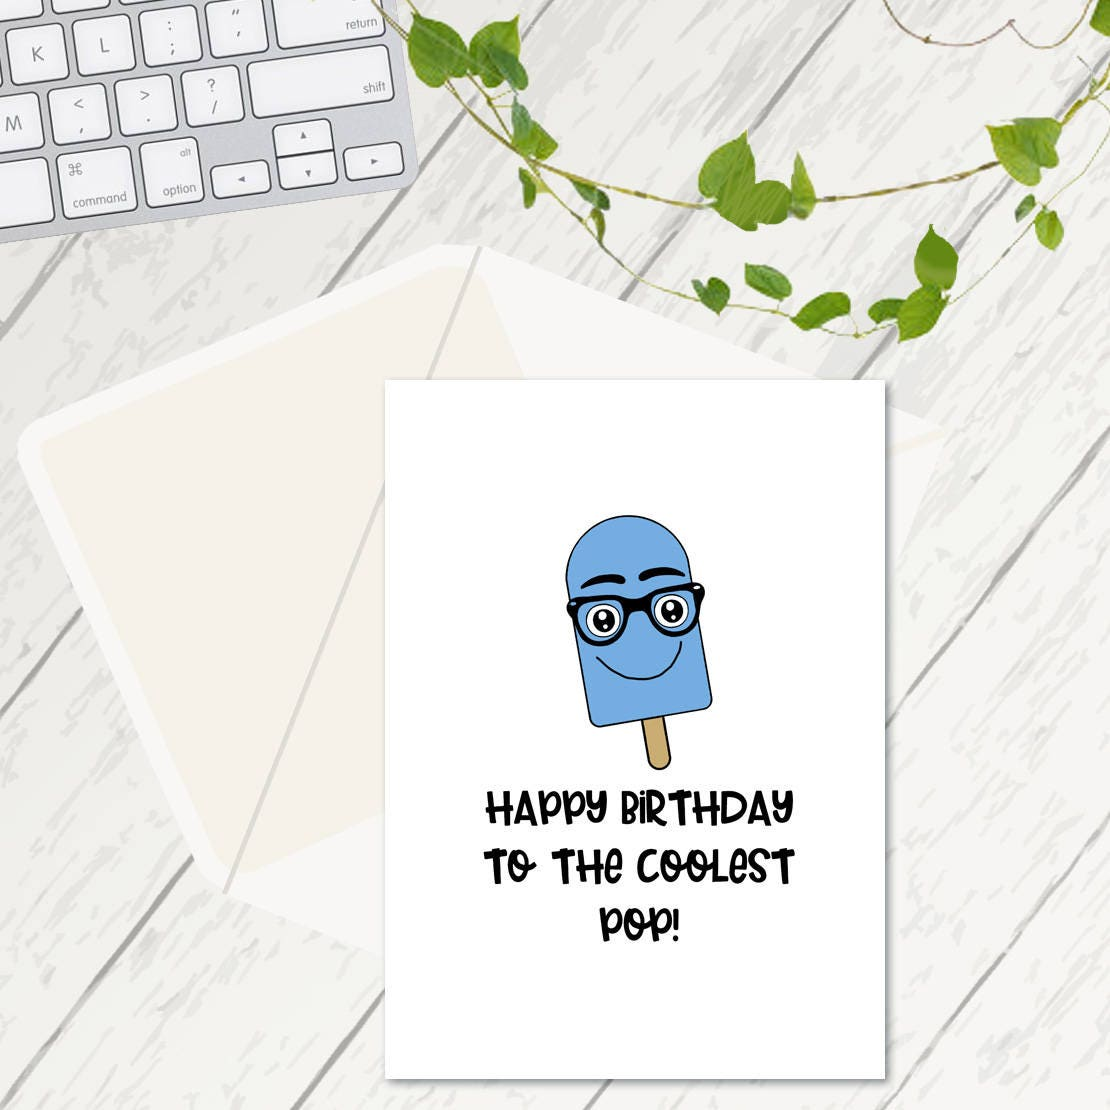 Happy birthday to the coolest pop ice lolly pun birthday cards happy birthday to the coolest pop ice lolly pun birthday cards dad birthday bookmarktalkfo Choice Image